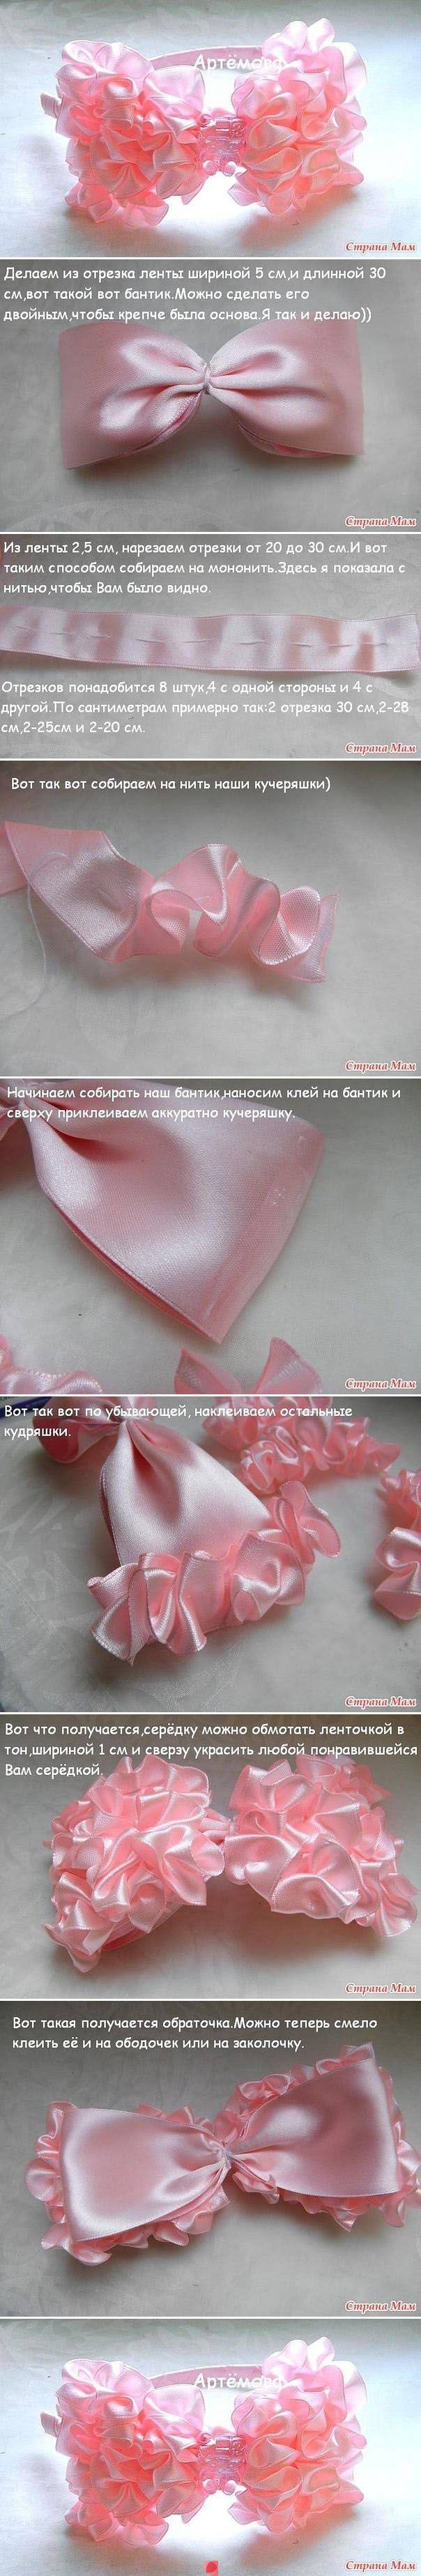 ruffle ribbon bow headband w/ jewels in the center area...photo tutorial...bow is very pretty for a little girl